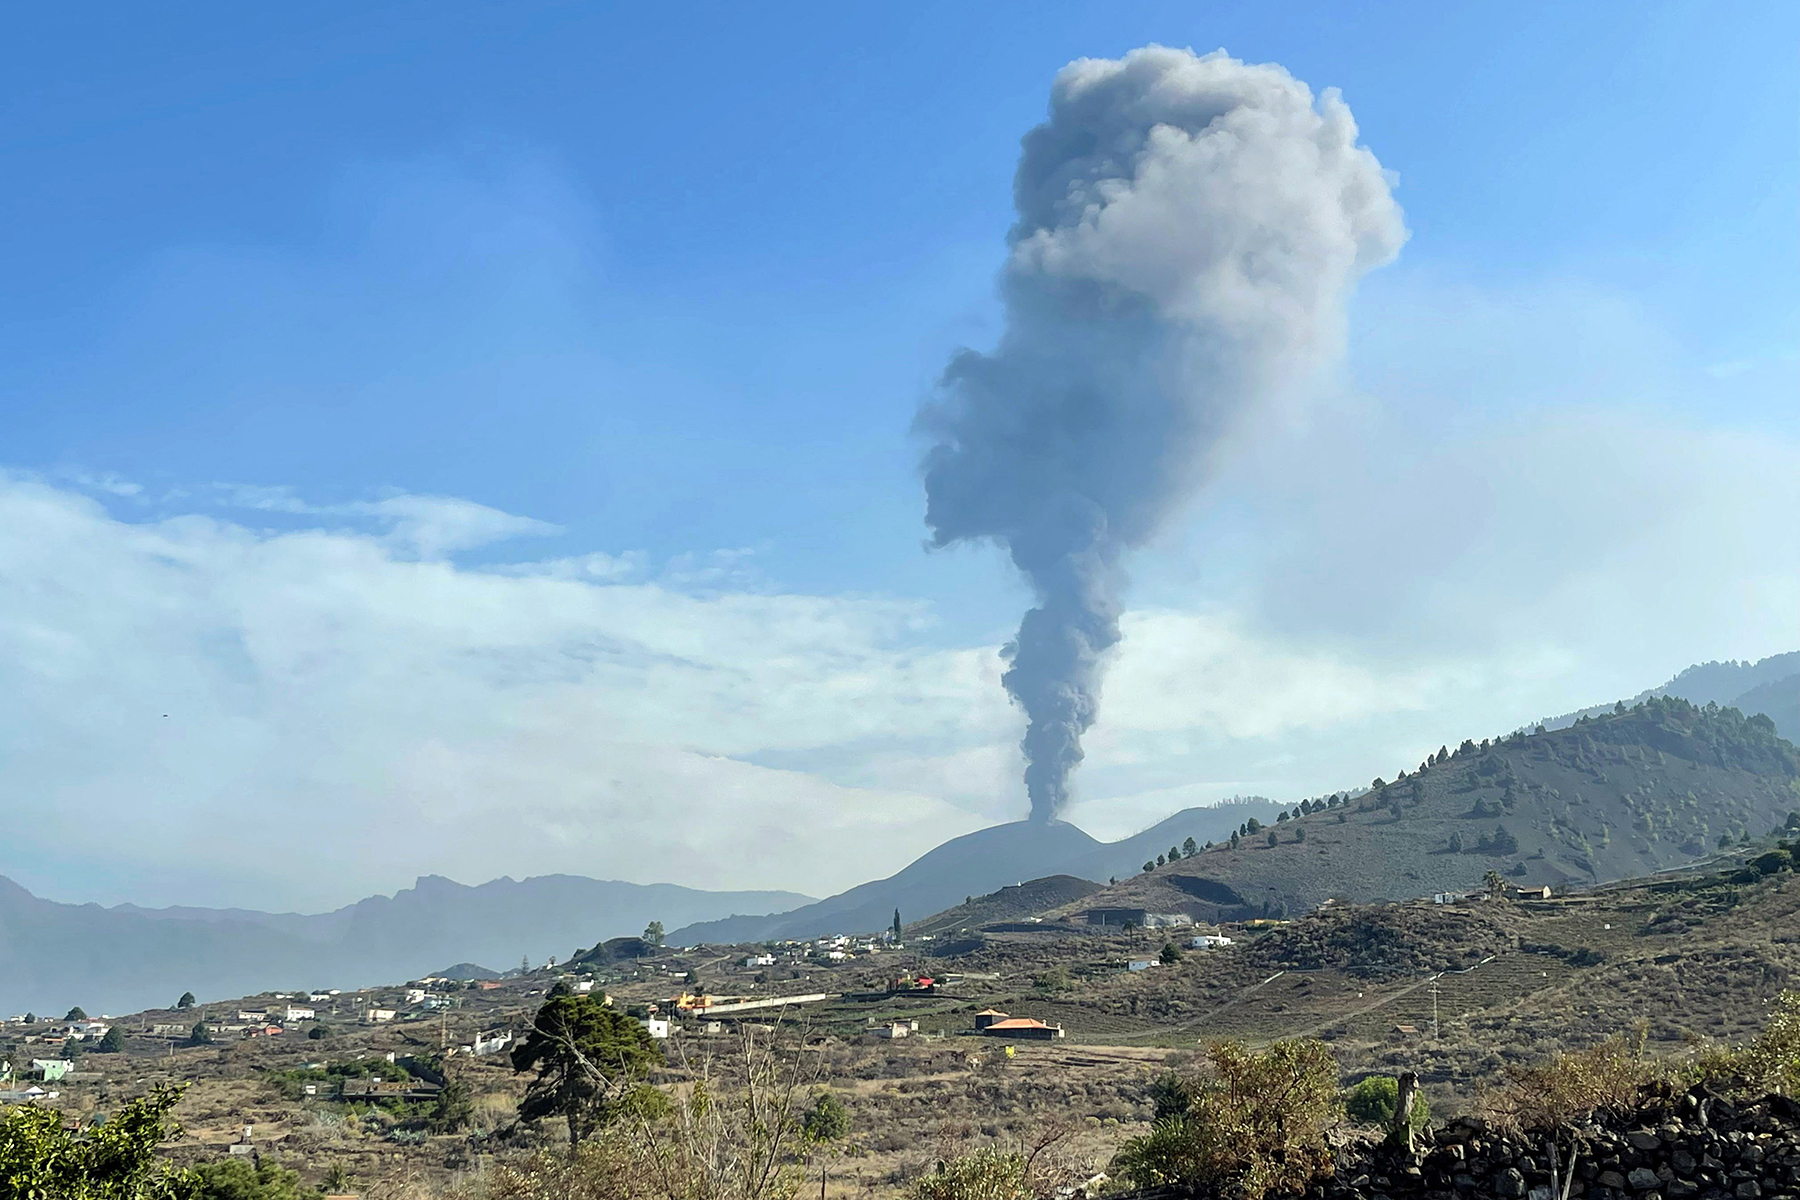 The Cumbre Vieja volcano resumes its activity after a short period of inactivity in Los Llanos de Aridane on the Canary island of La Palma on September 27, 2021